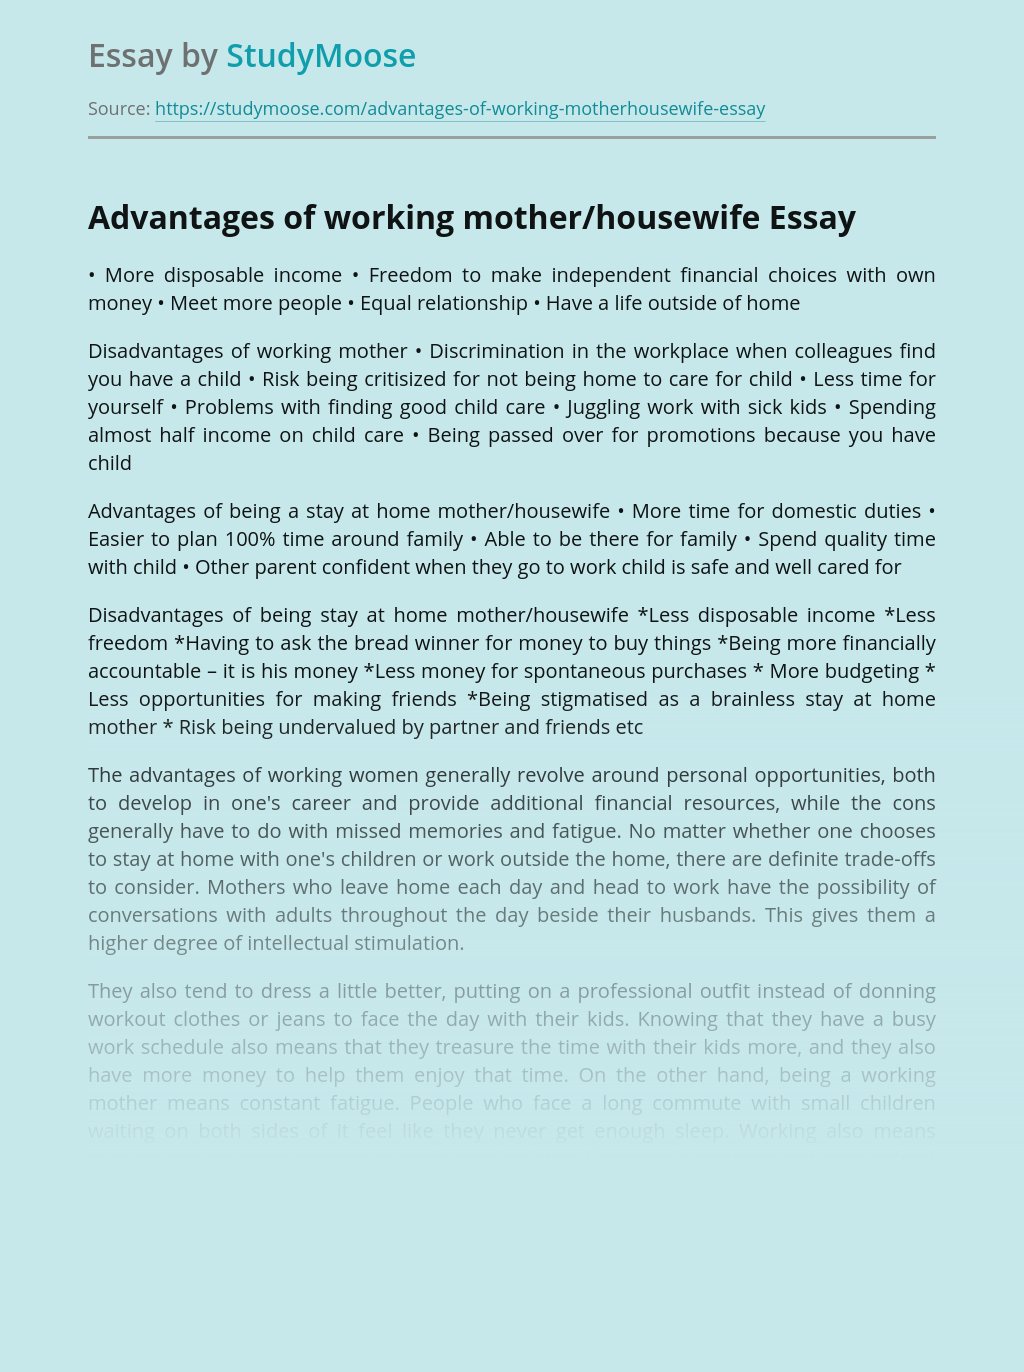 Advantages of working mother/housewife